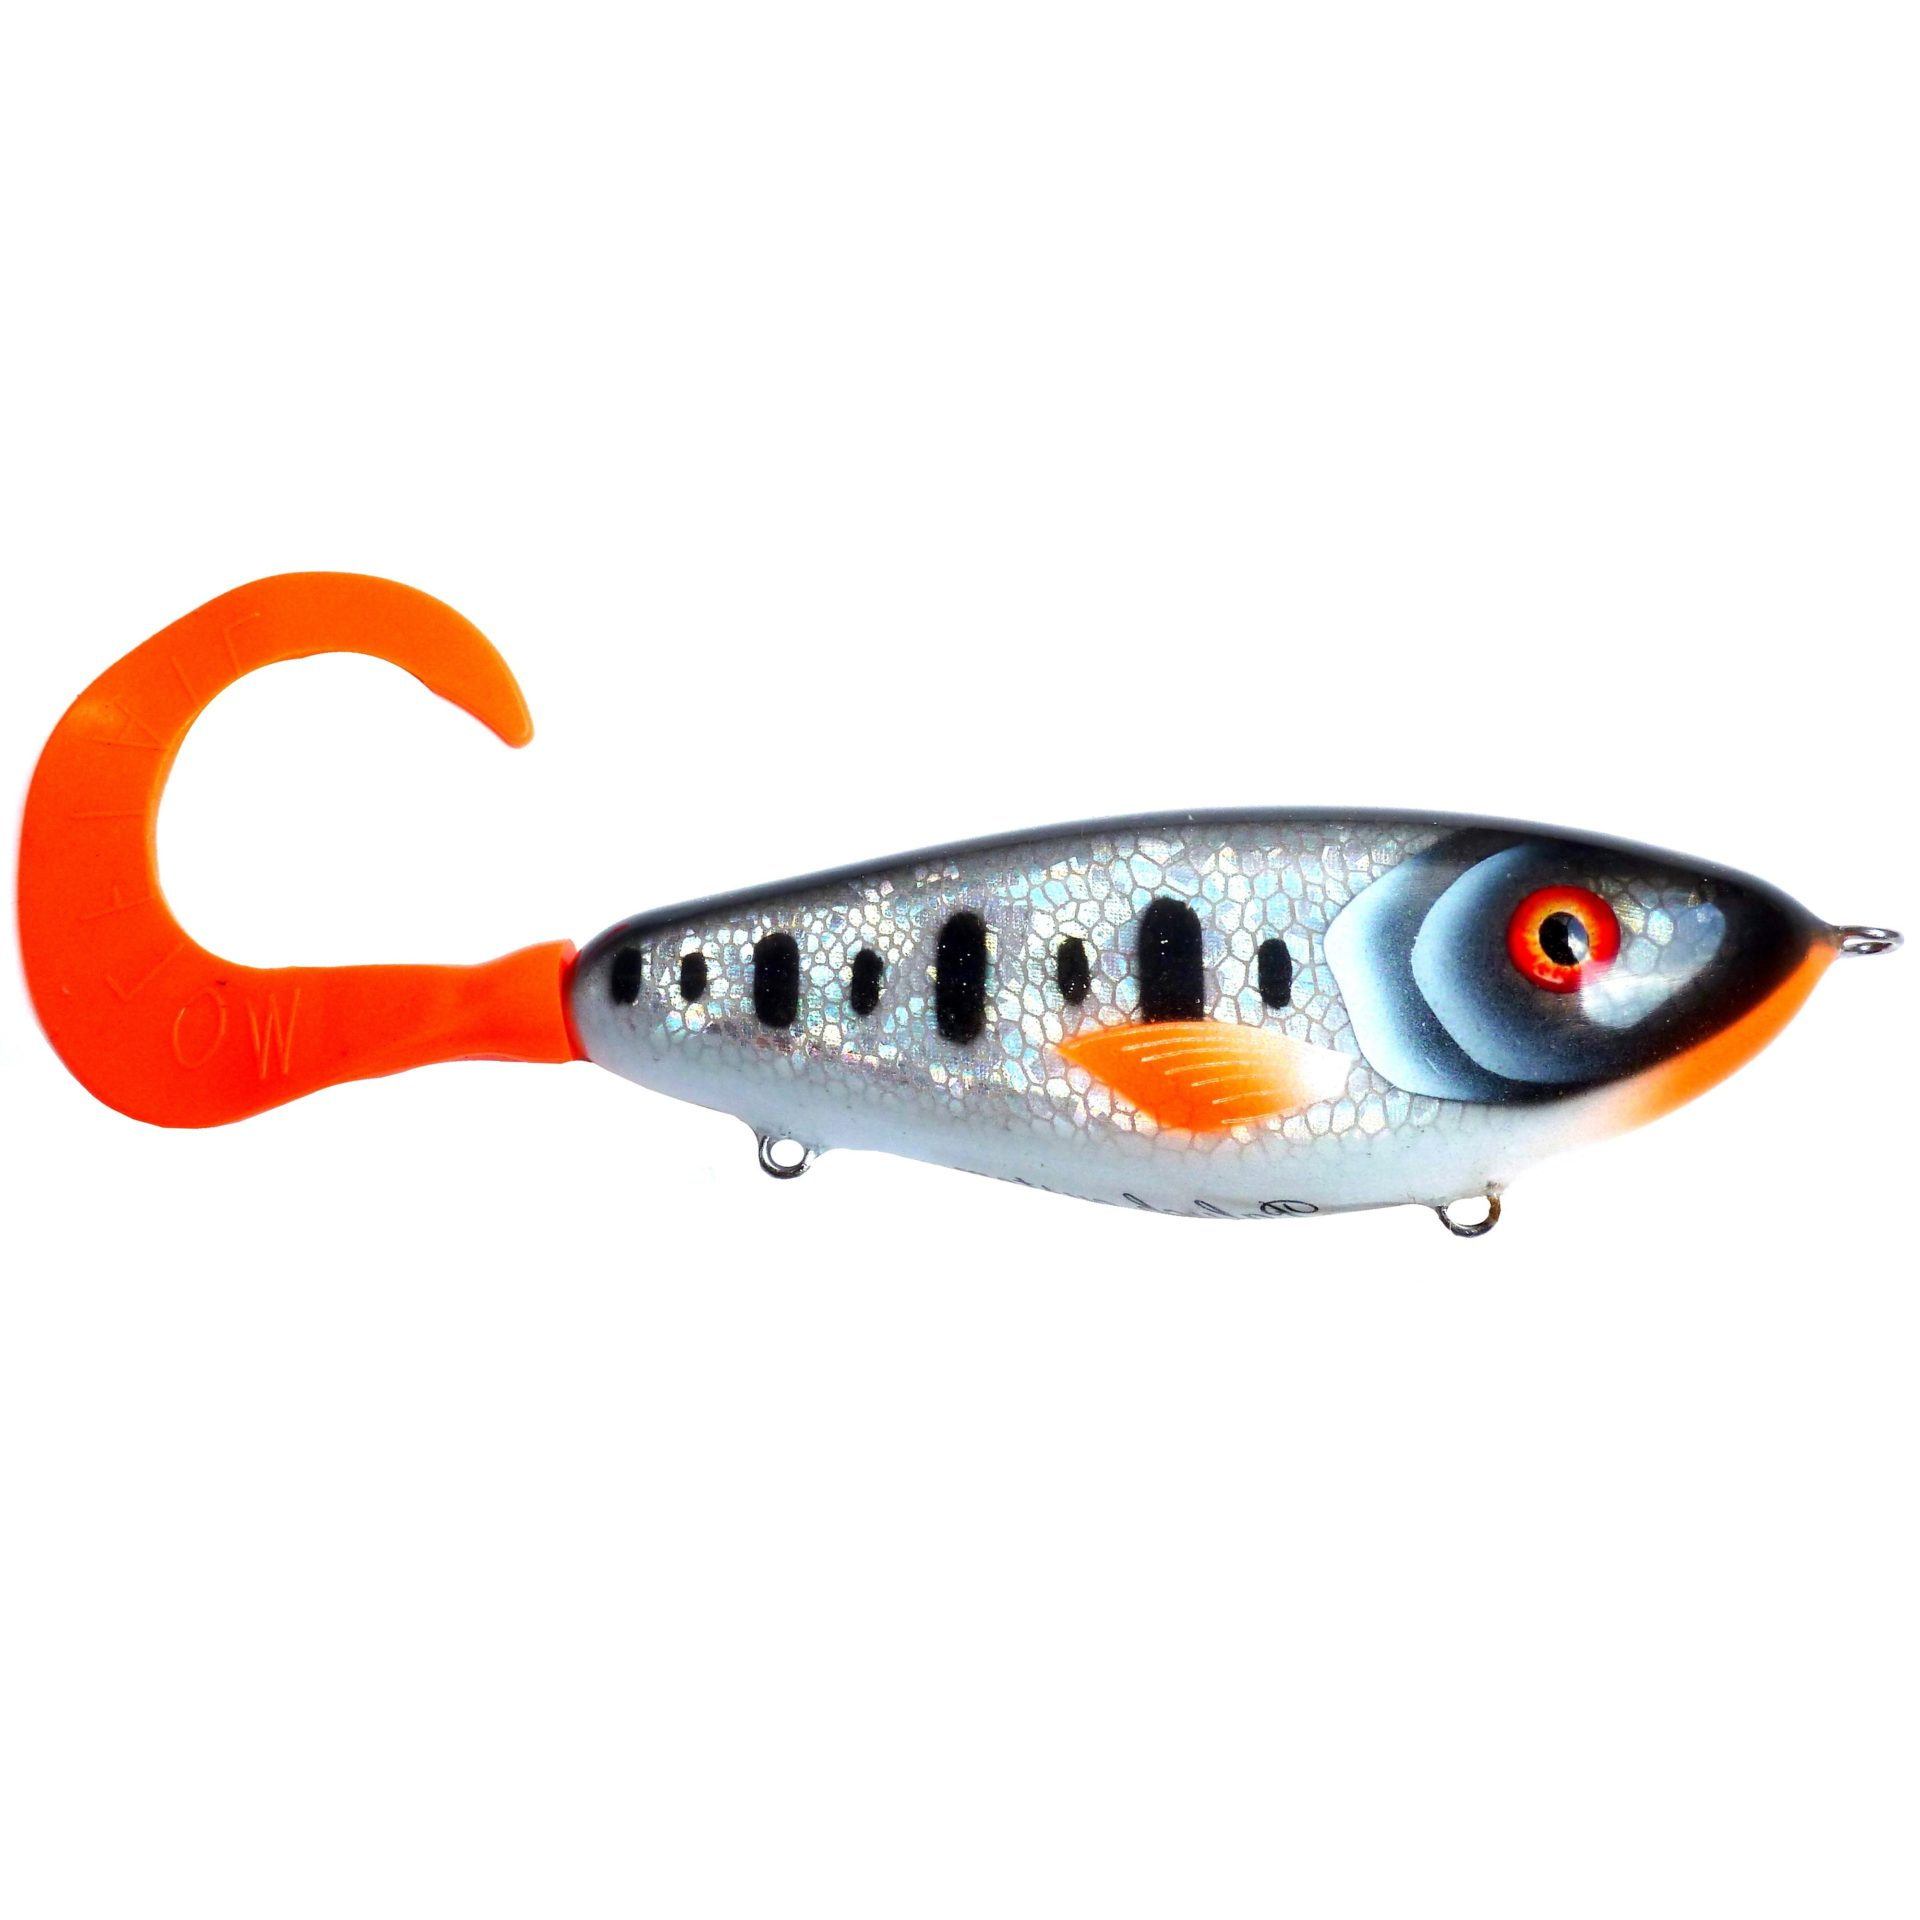 Palych Custom Renegade Petty Perch Tail Silver Foil Spotted